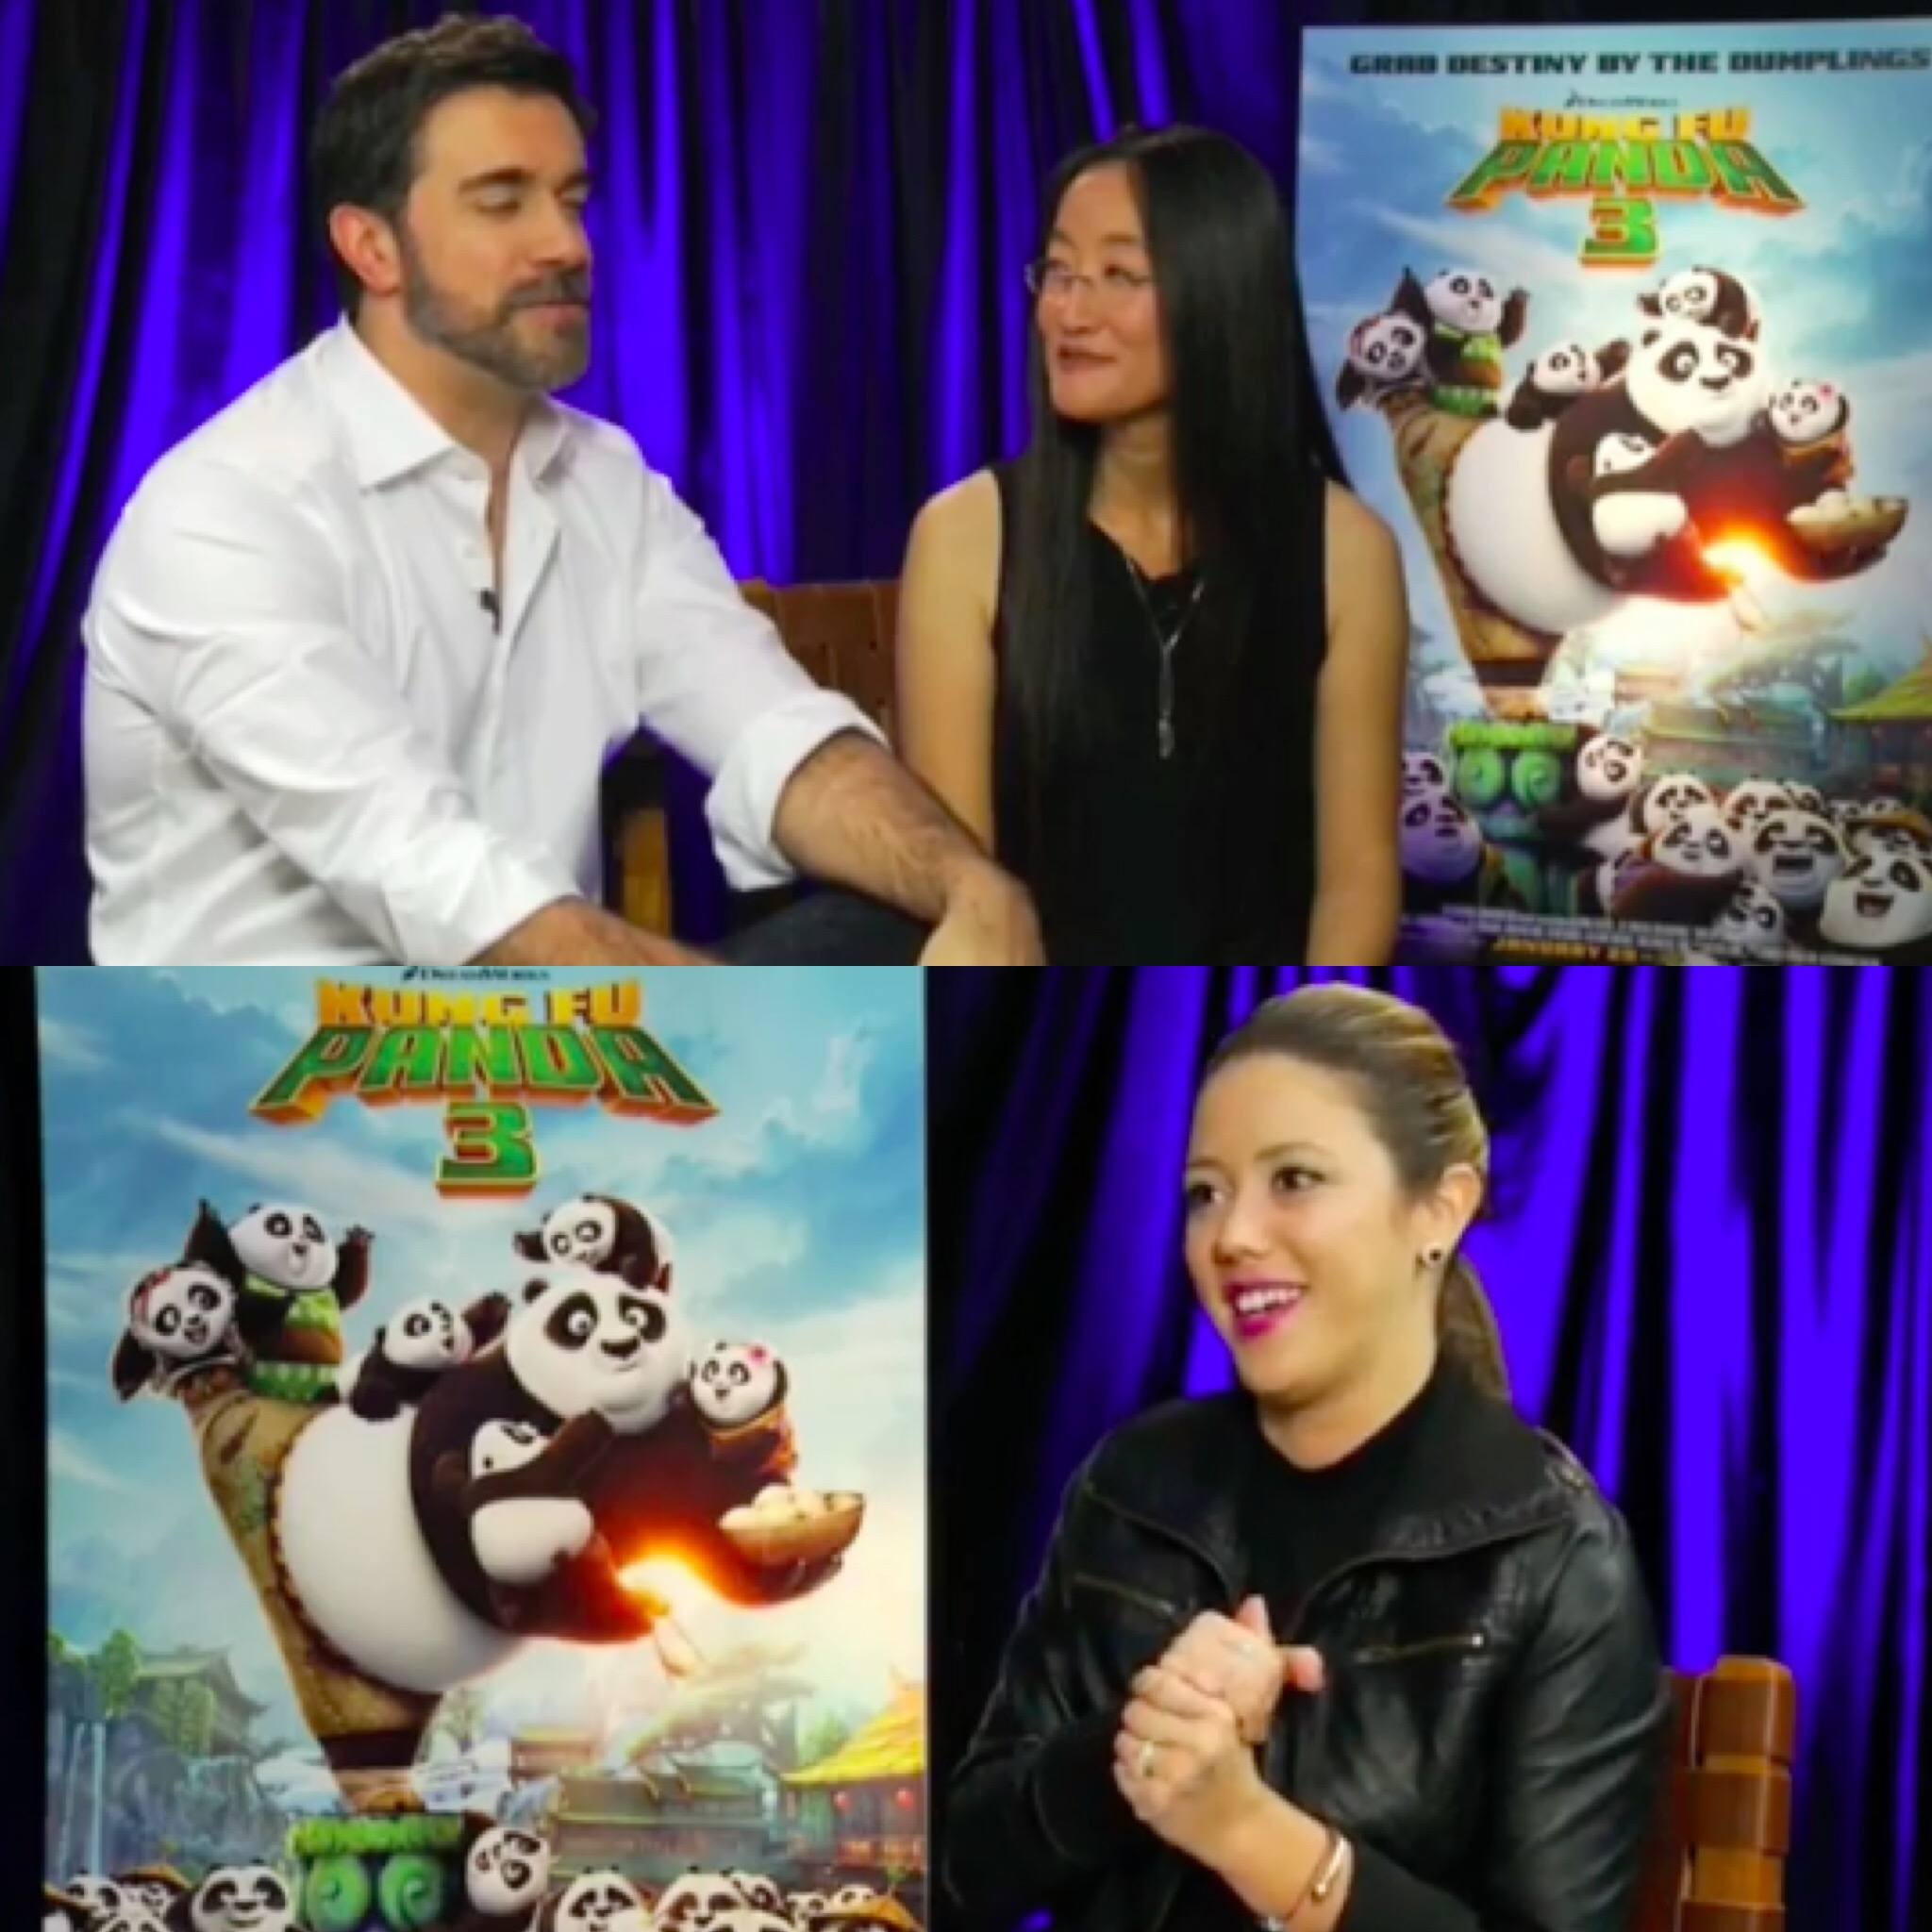 Meli Chats with Animators from Kung Fu Panda 3